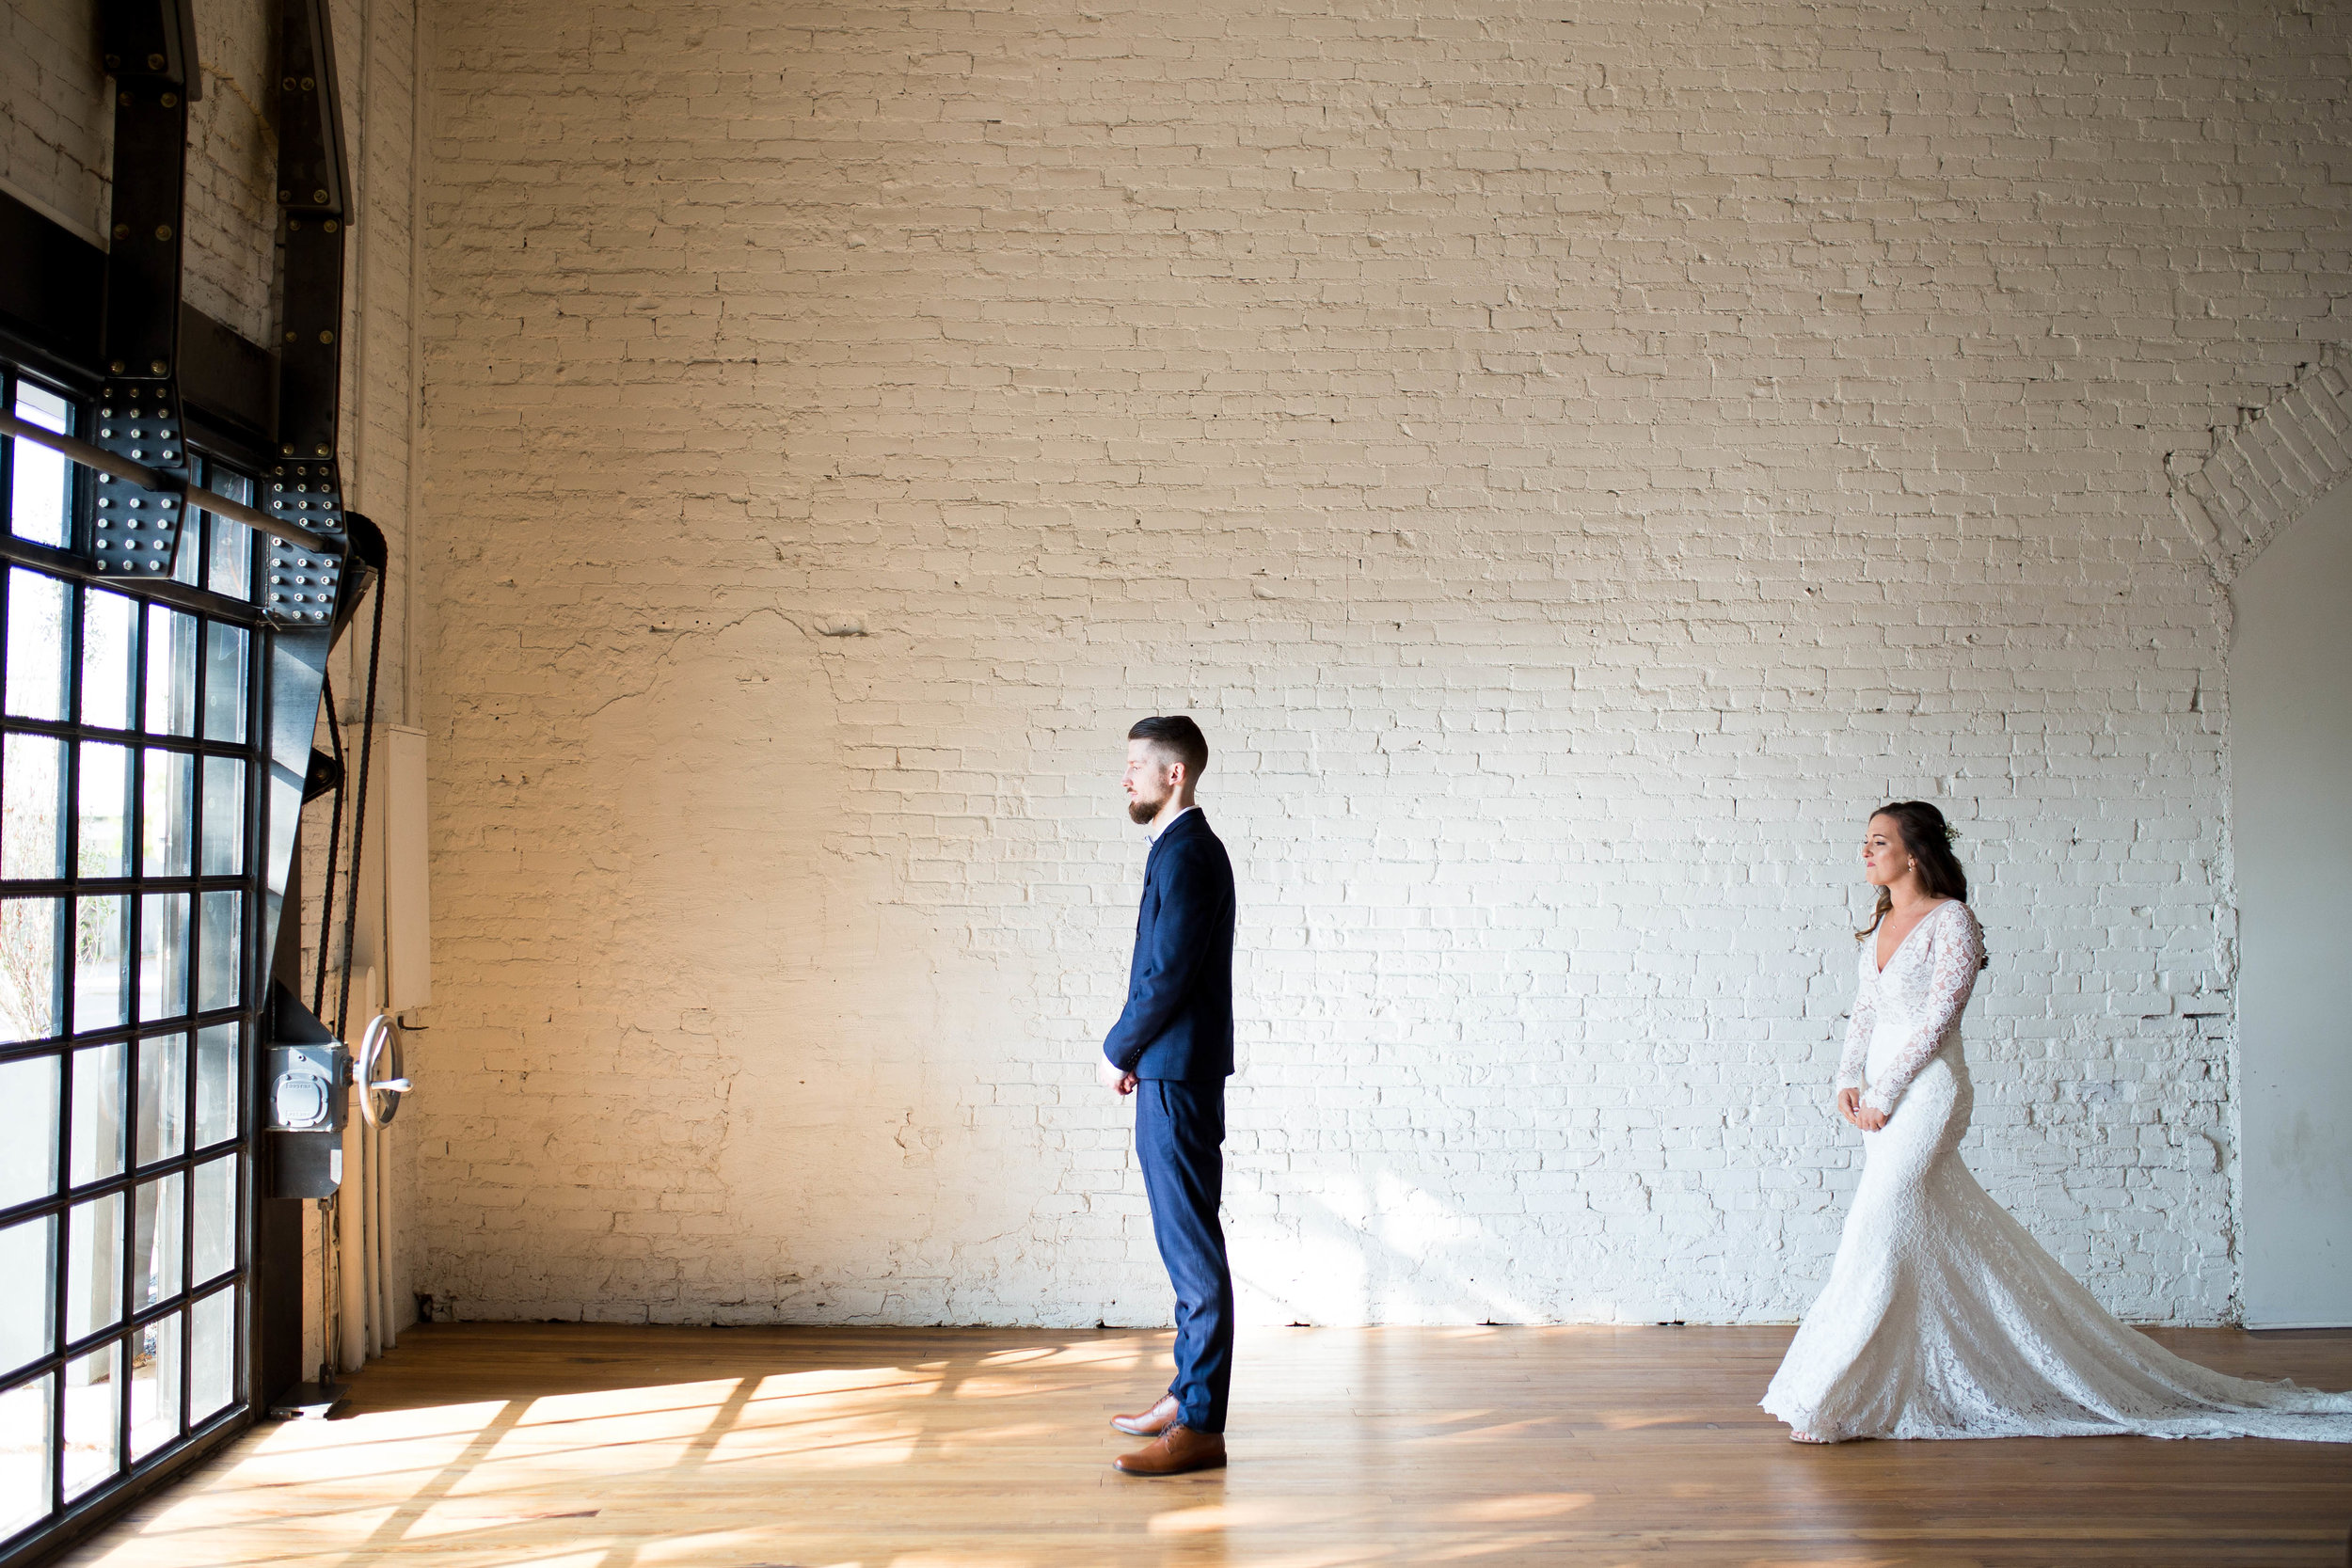 stephanie-hanson-photography-new-york-city-san-antonio-wedding-photographer-stephanie-hanson-photo-new-york-city-wedding-photographer-stephanie-hanson-one-eleven-east-hutto-first-look